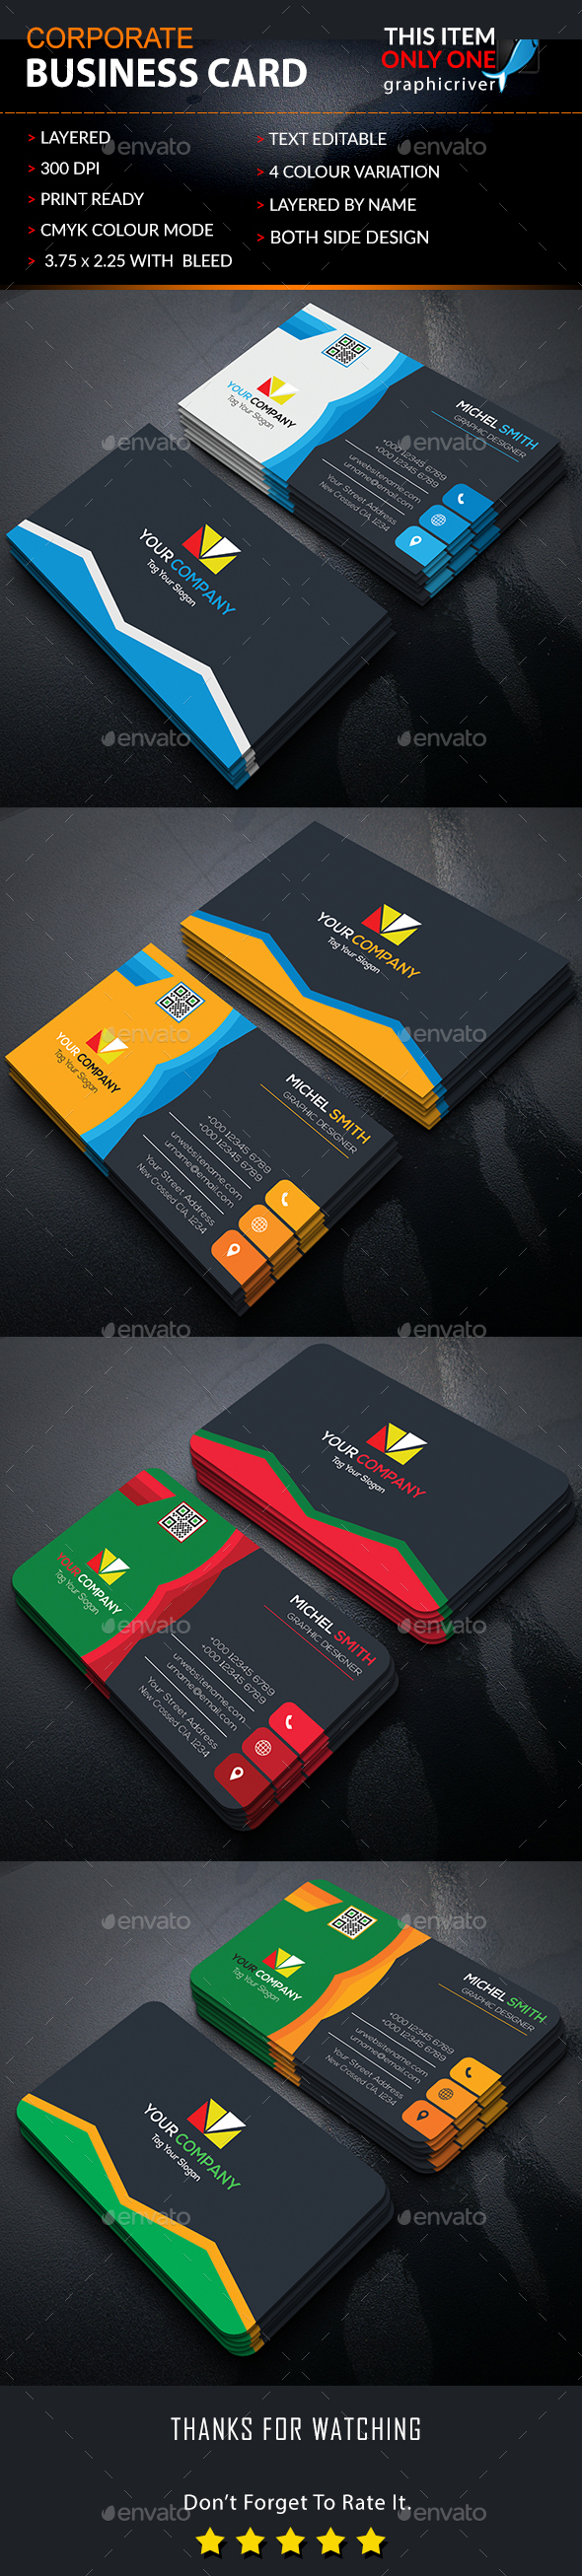 Creative business card design template creative business cards creative business card design template creative business cards design template psd download here reheart Image collections